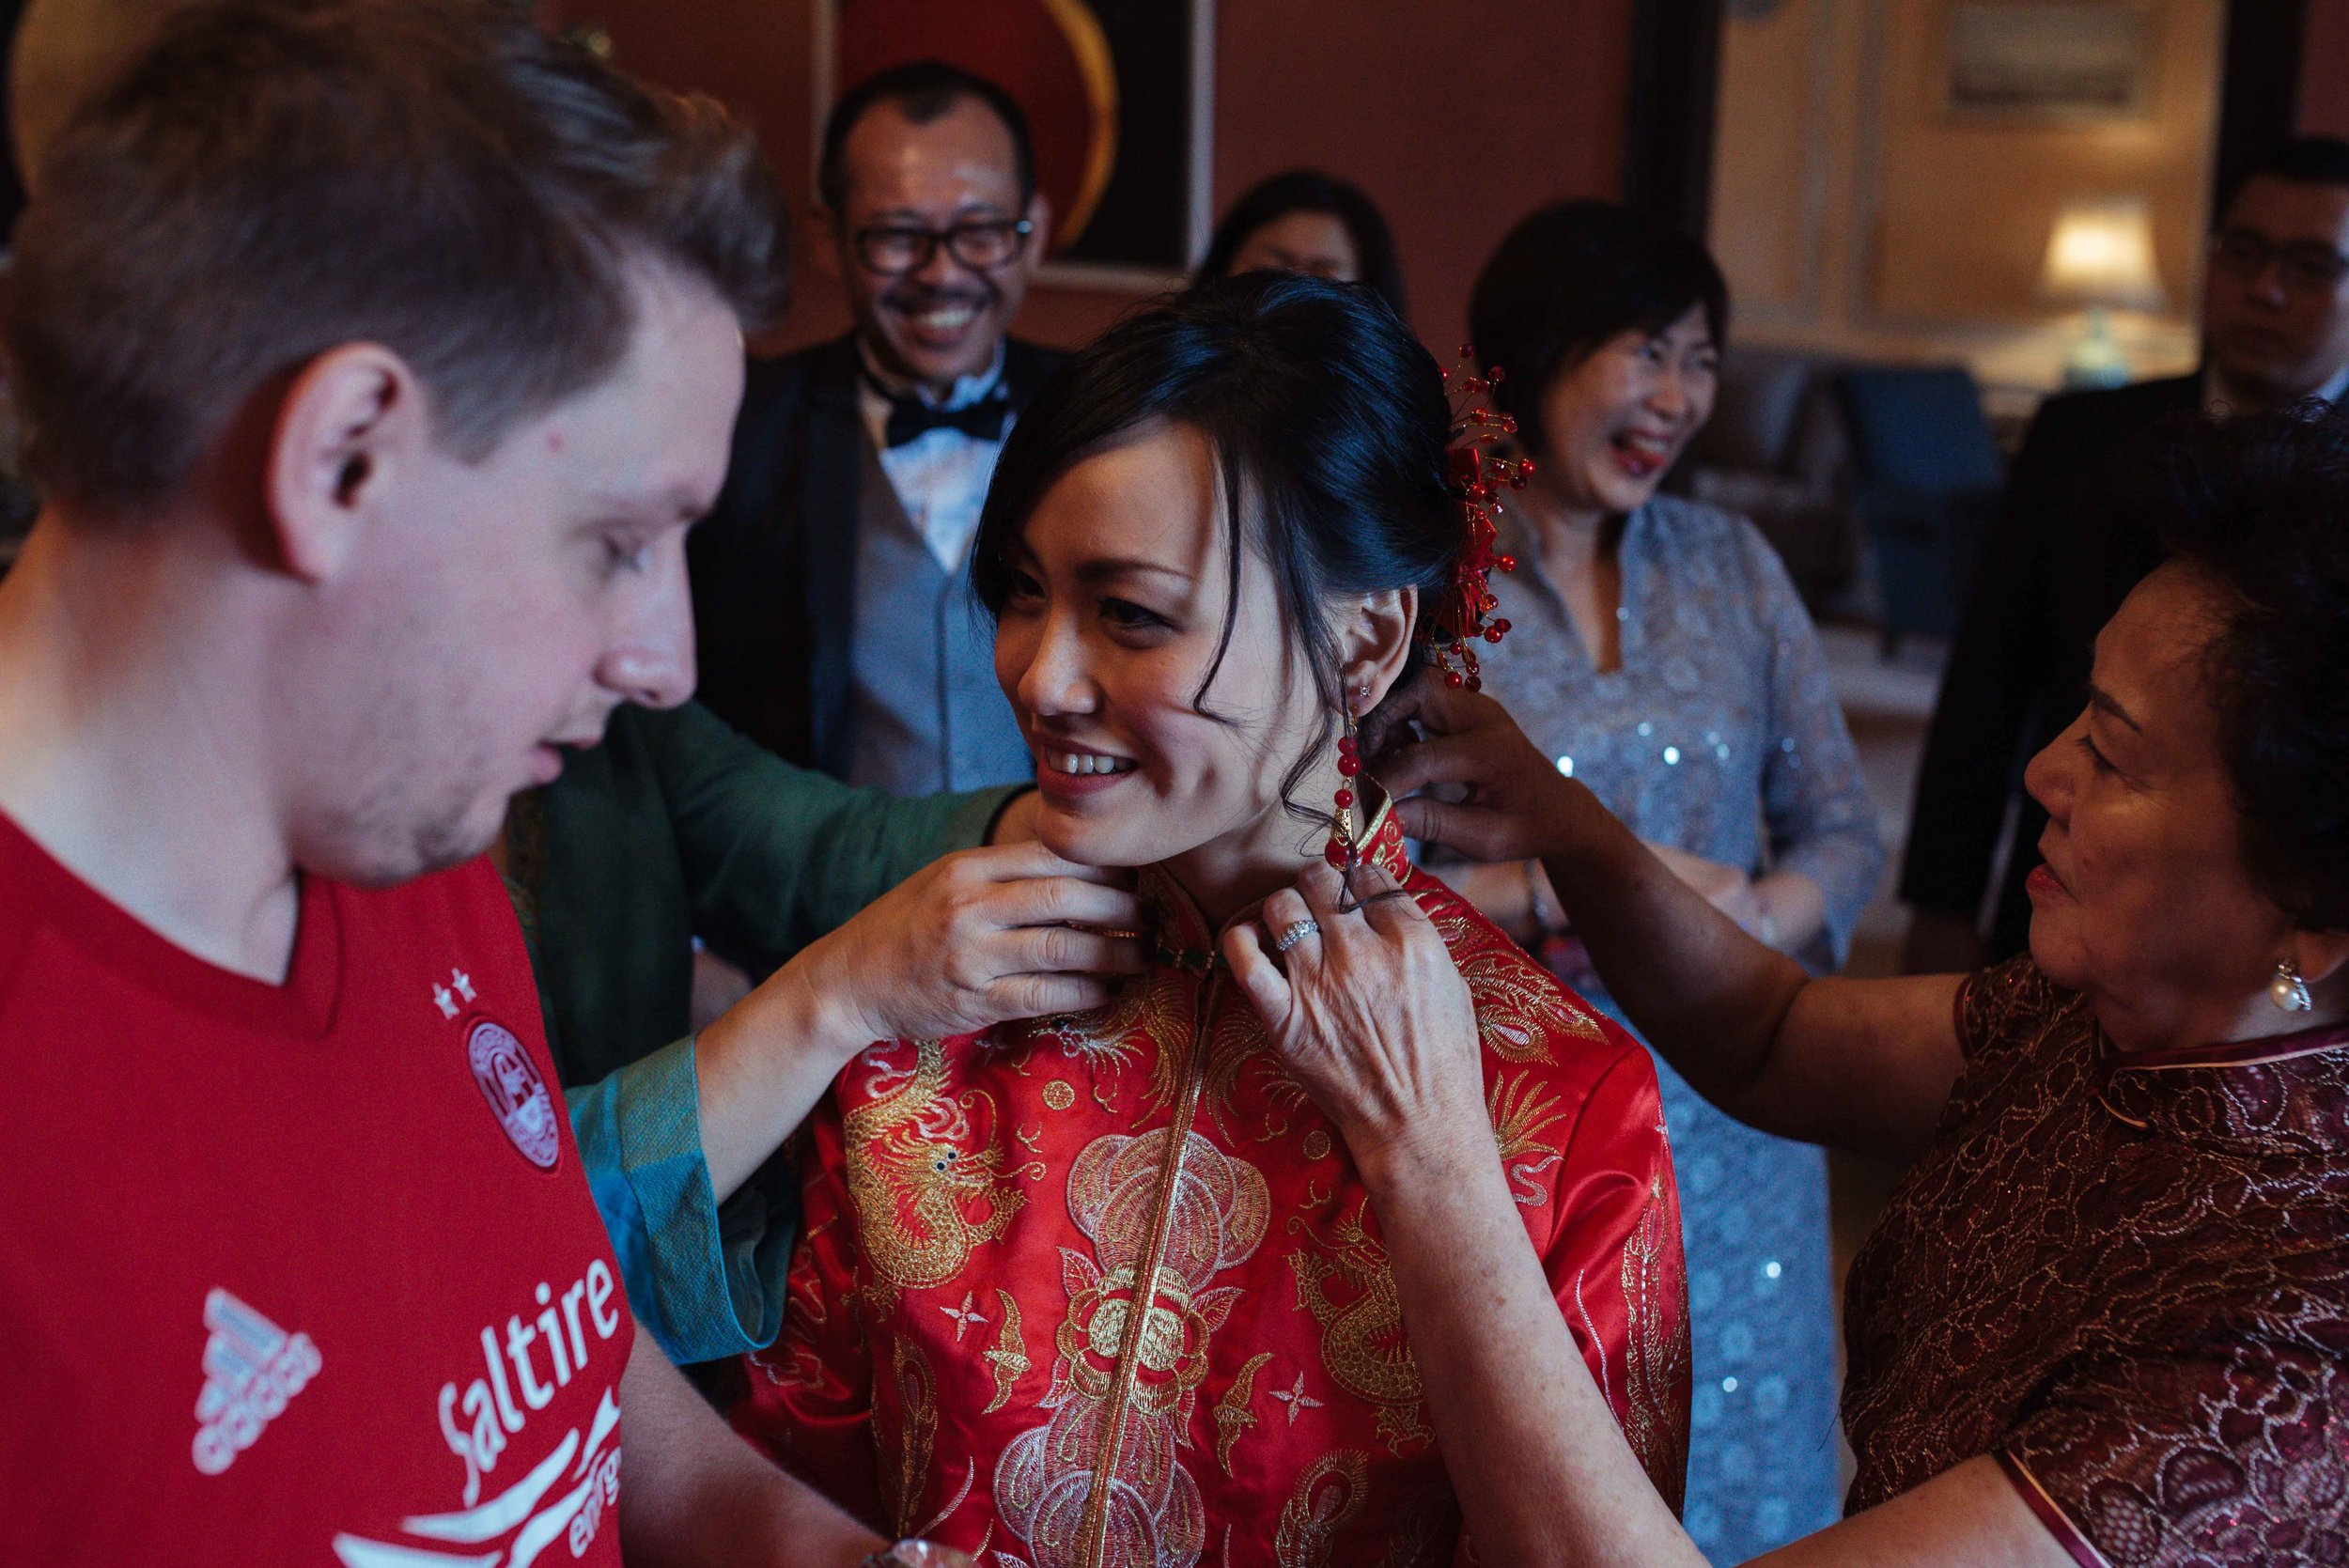 the bride puts on her new earrings during the tea ceremony at Askham Hall